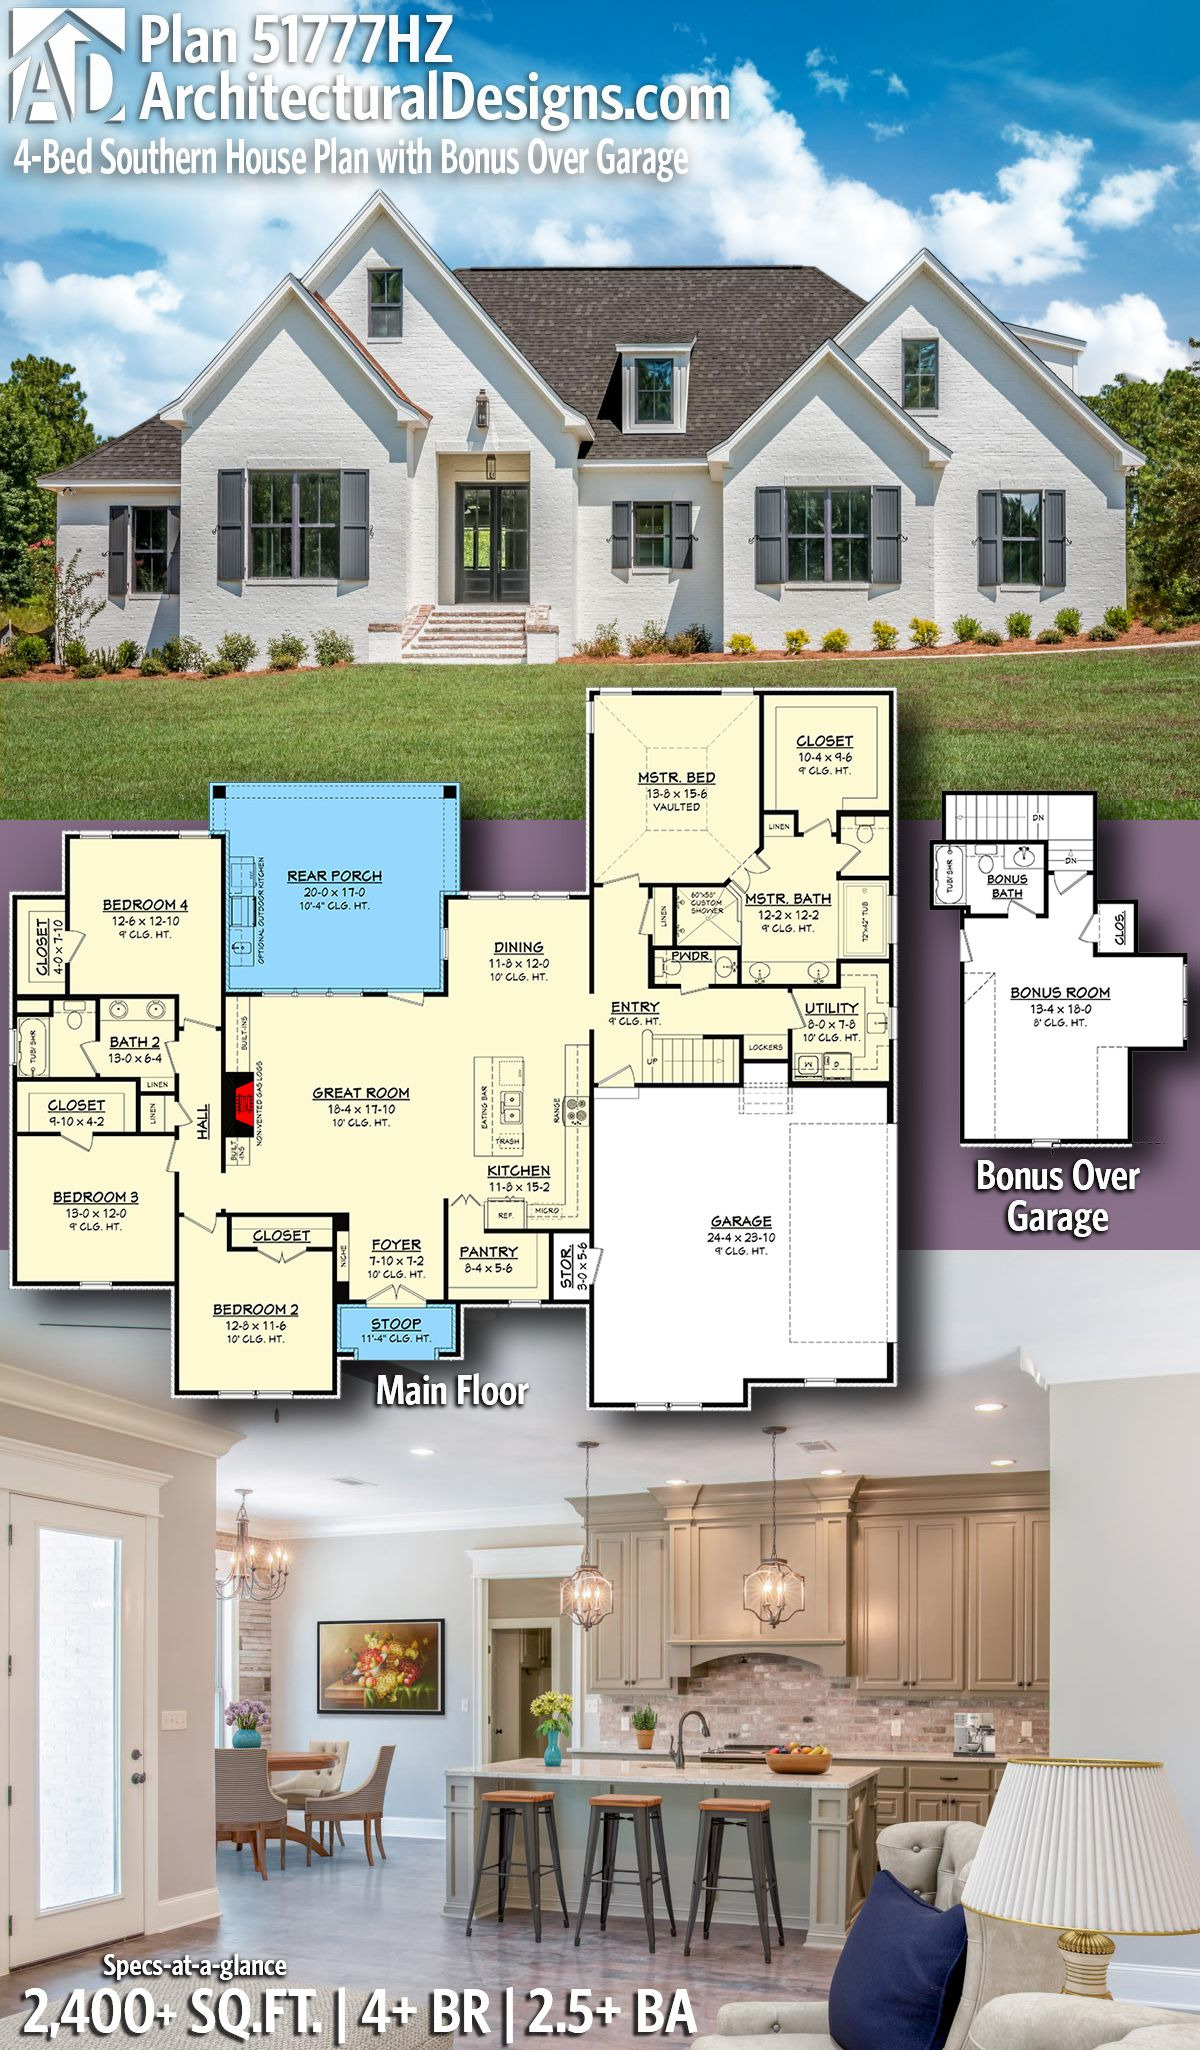 House Add On Plans Inspirational Plan Hz 4 Bed southern House Plan with Bonus Over